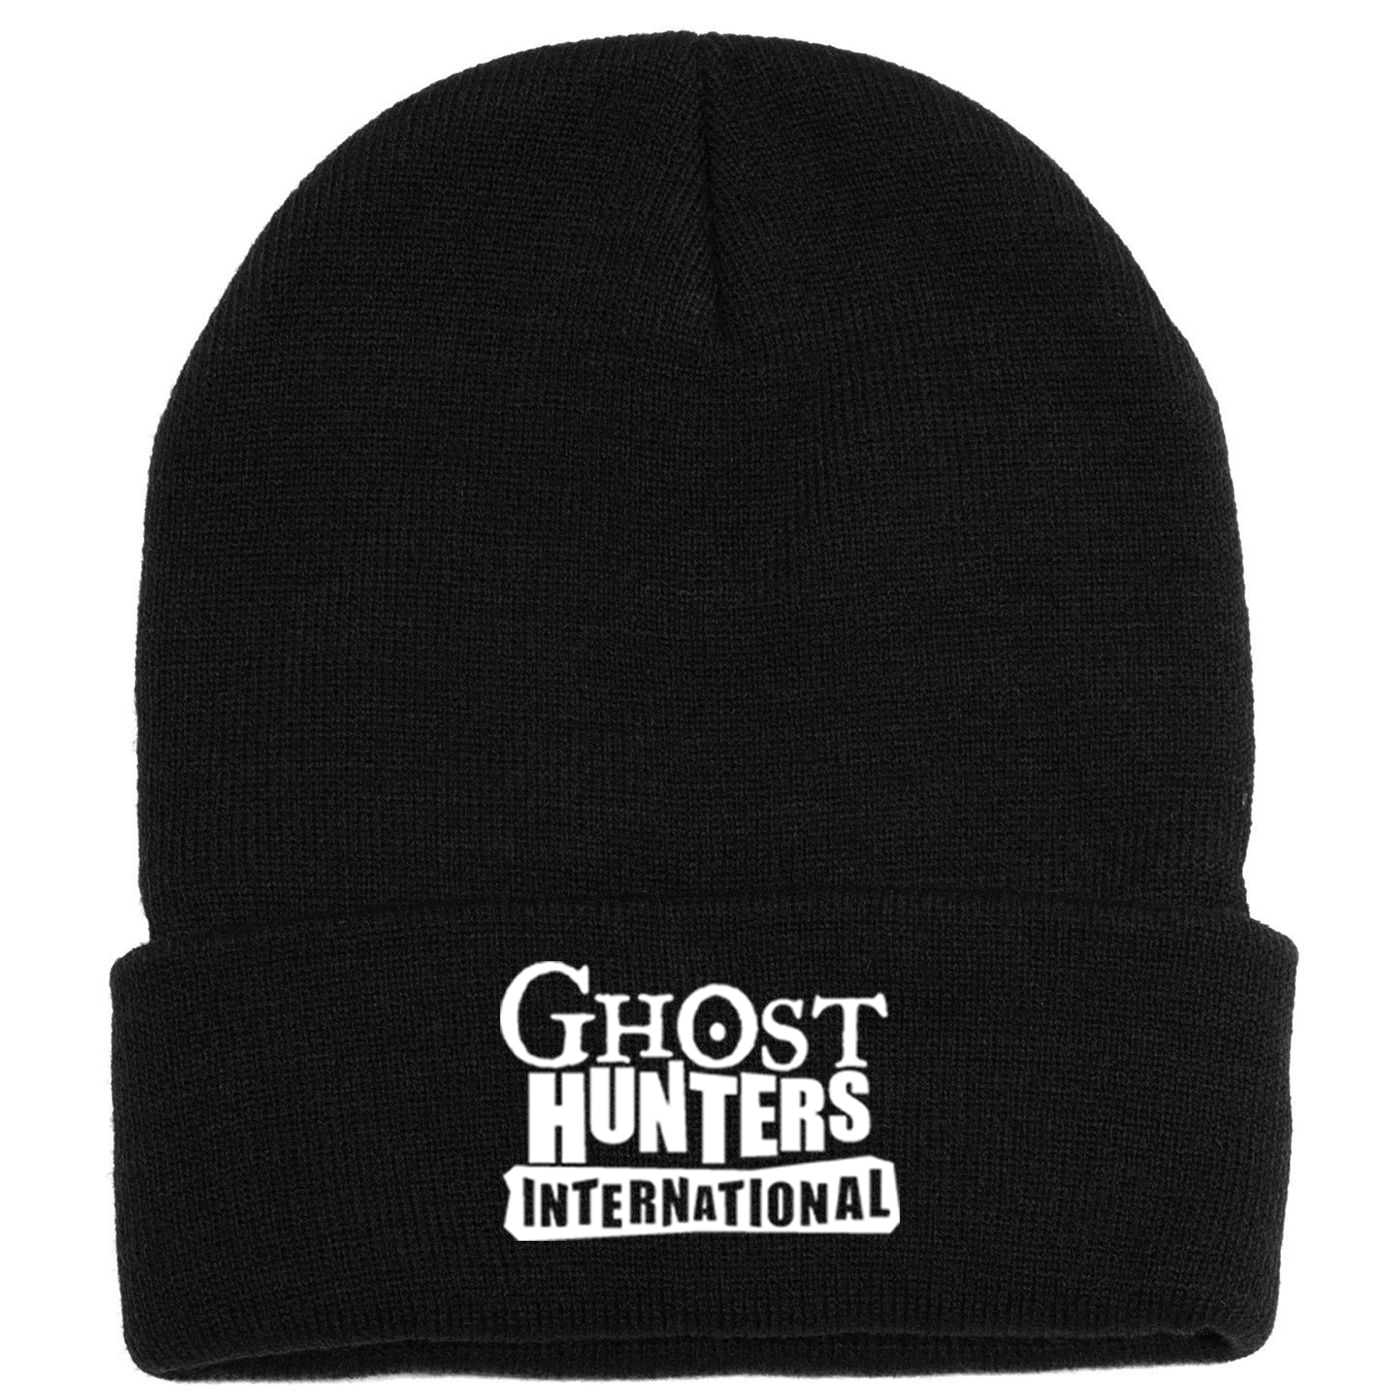 Ghost Hunters International Knit Beanie